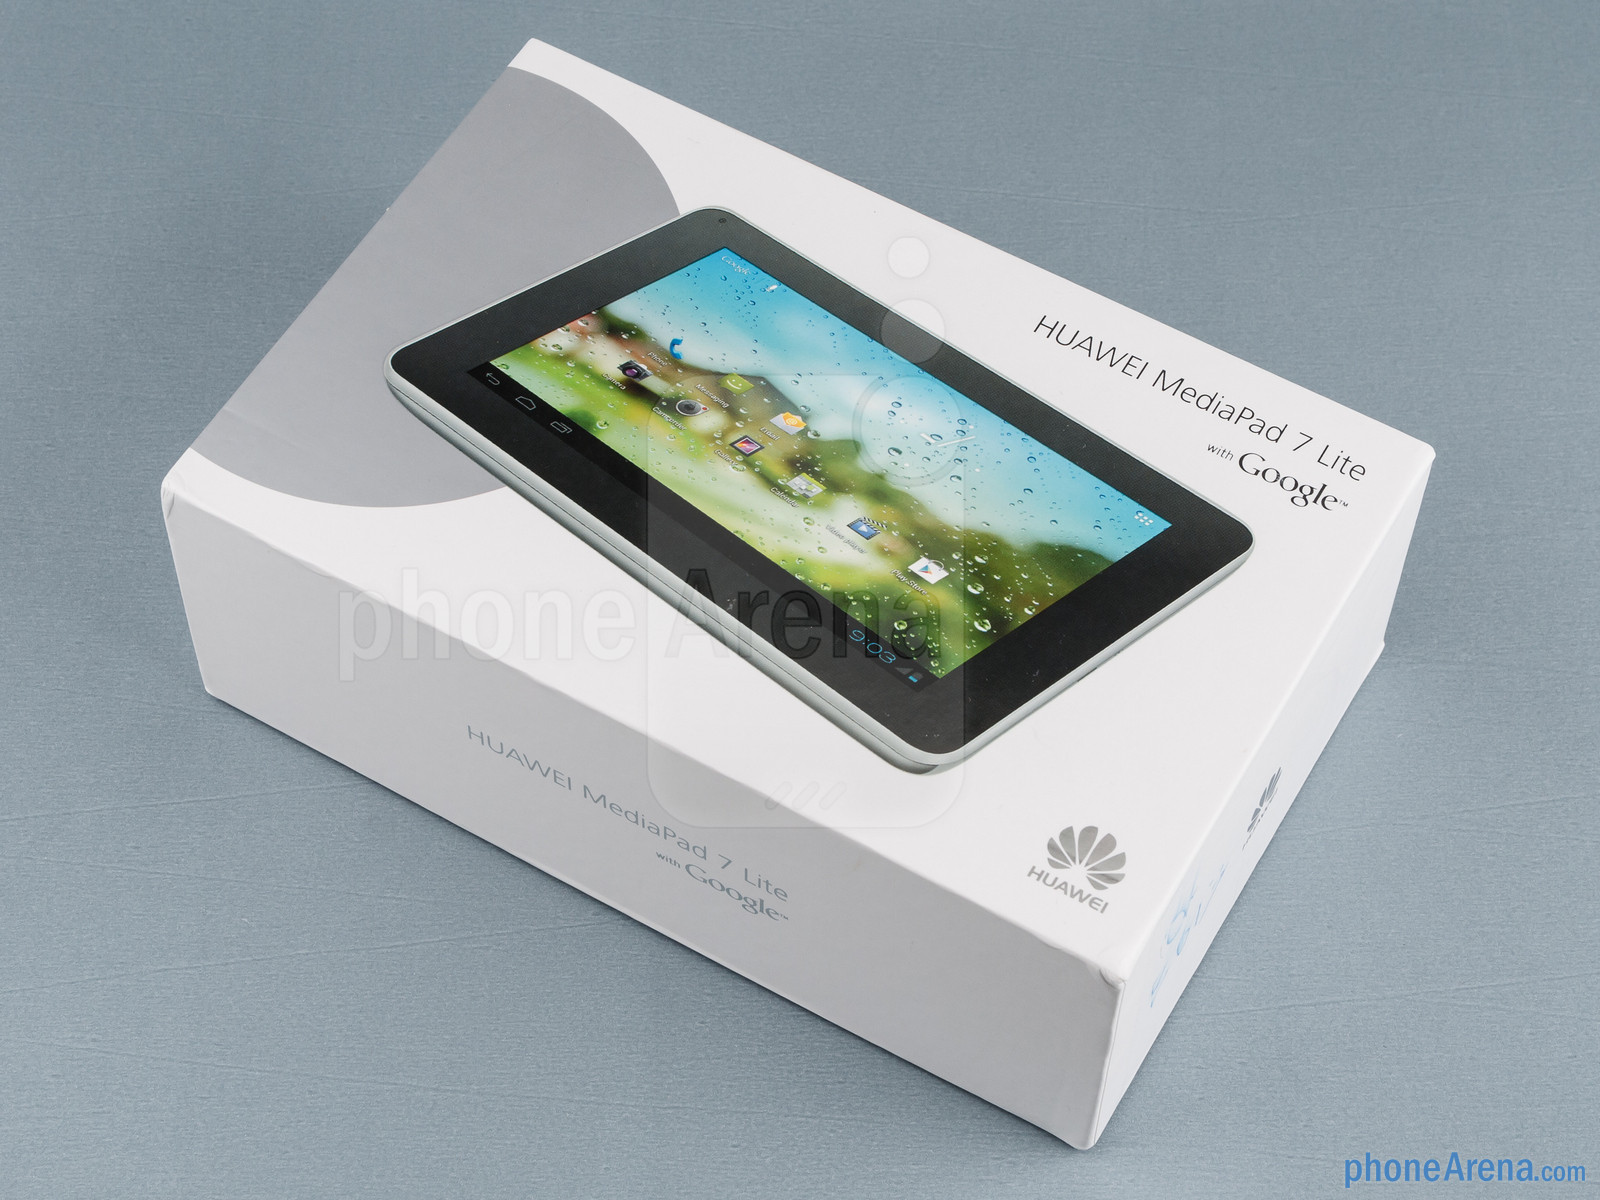 Huawei-MediaPad-7-Lite-Review-01-box-jpg